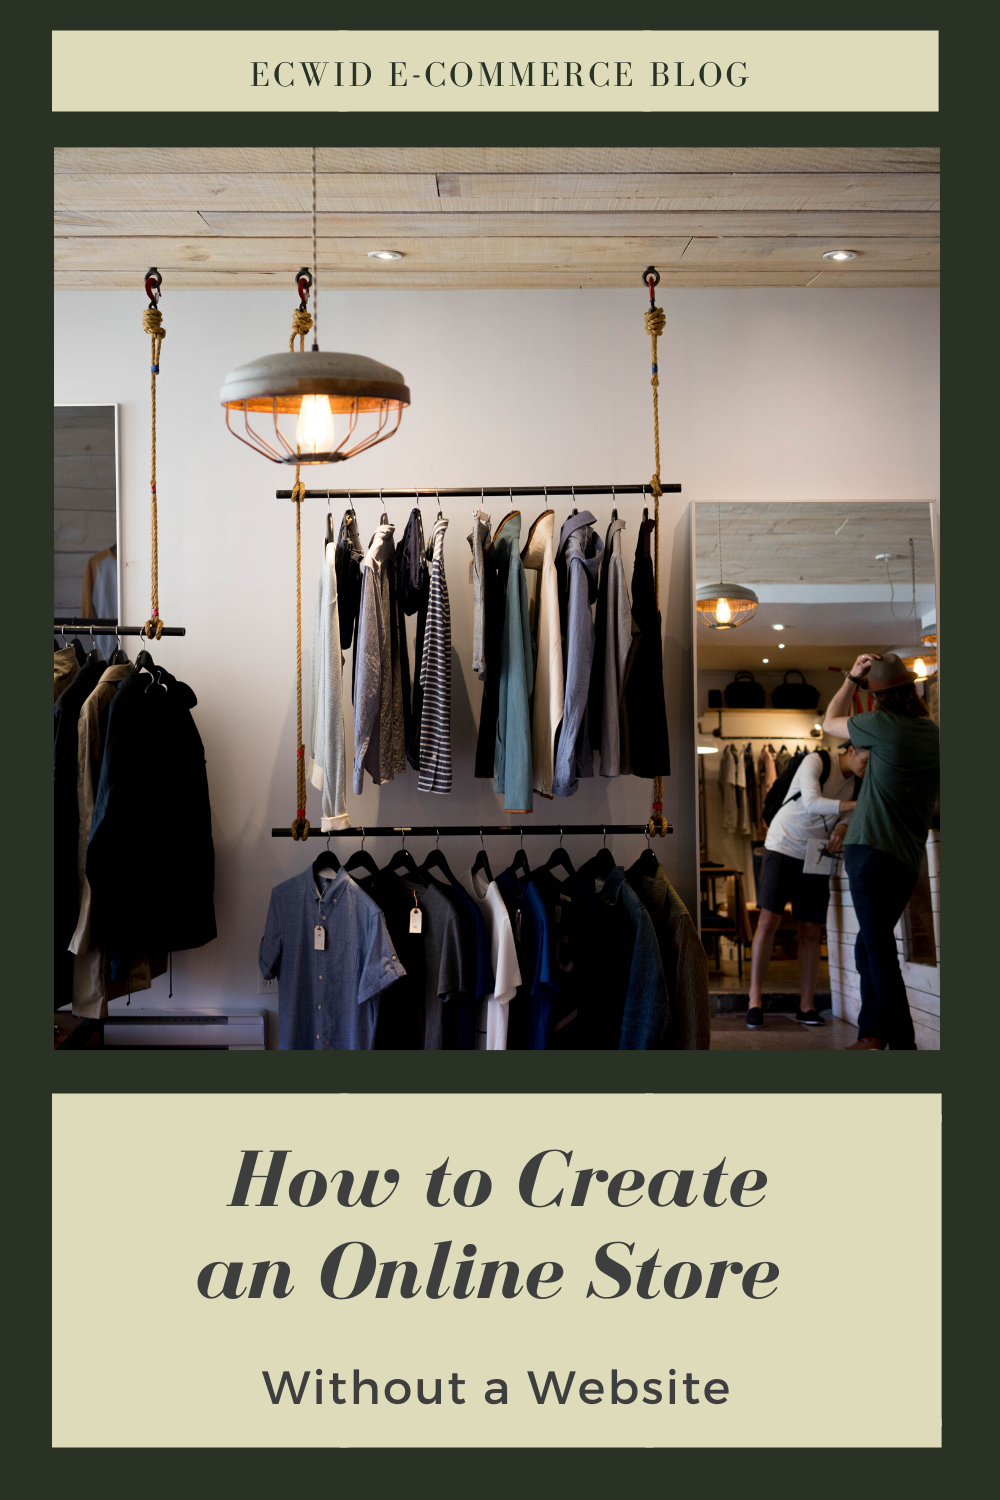 How to Create an Online Store Without a Website